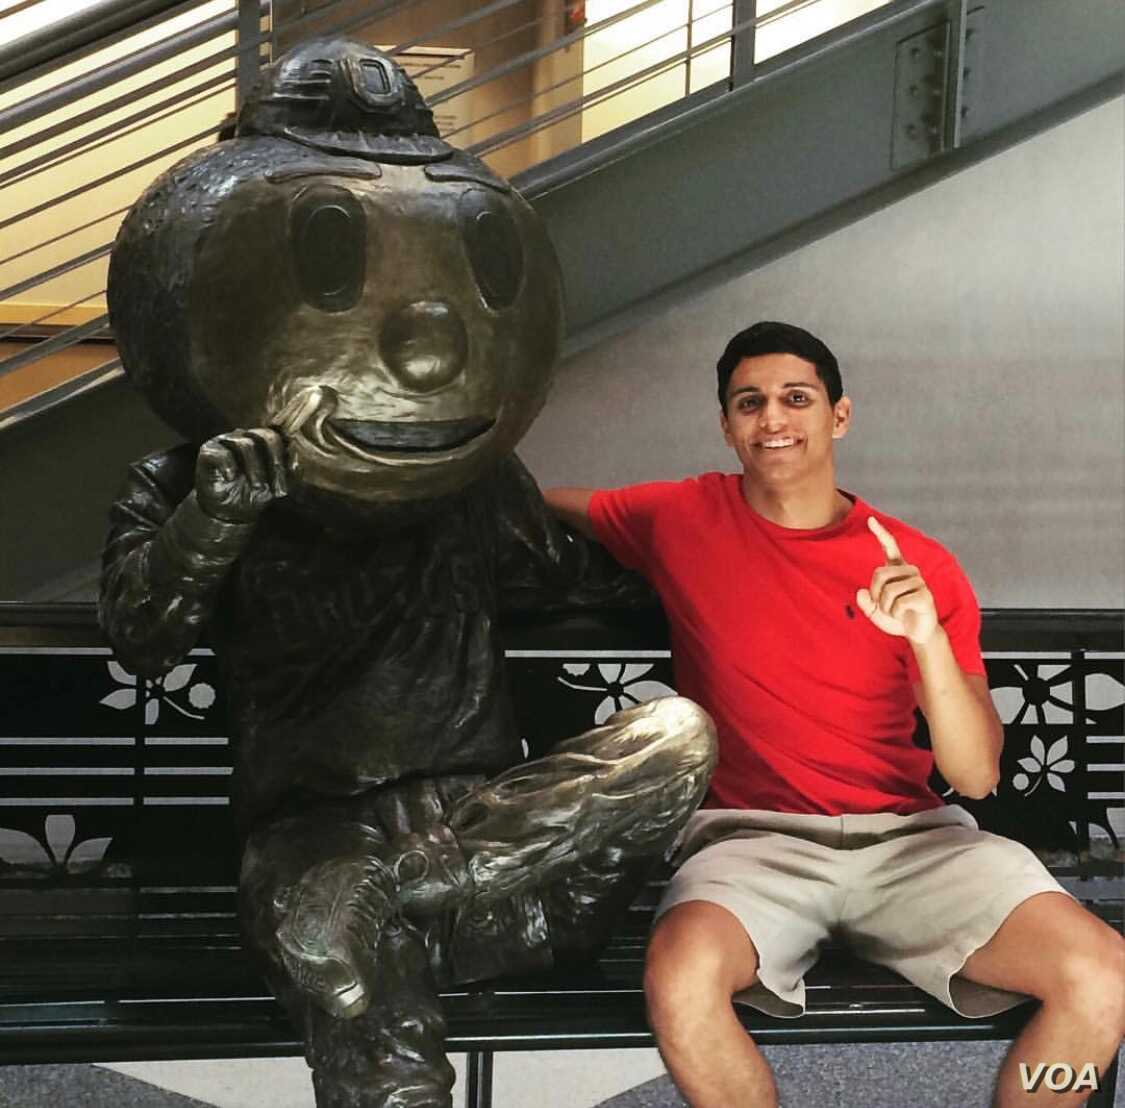 Tarek Saoud, now 22, in a photo taken at Ohio State University on the day he decided which college to attend. (Photo courtesy of Tarek Saoud)